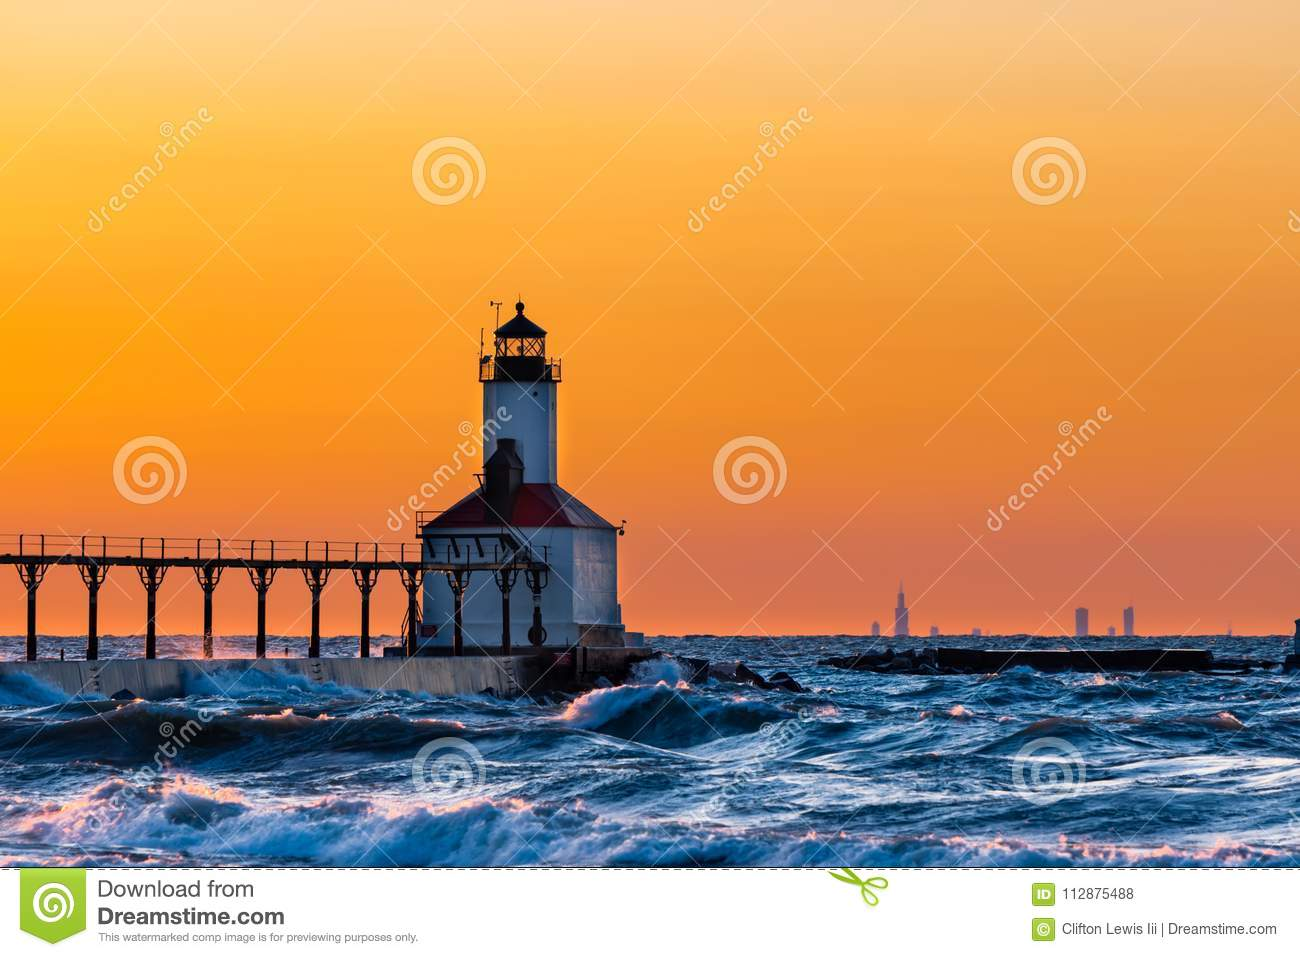 Michigan stad, Indiana/USA: 03/23/2018/Washington Park Lighthouse badade i en härlig solnedgång med Chicago som ser över henne